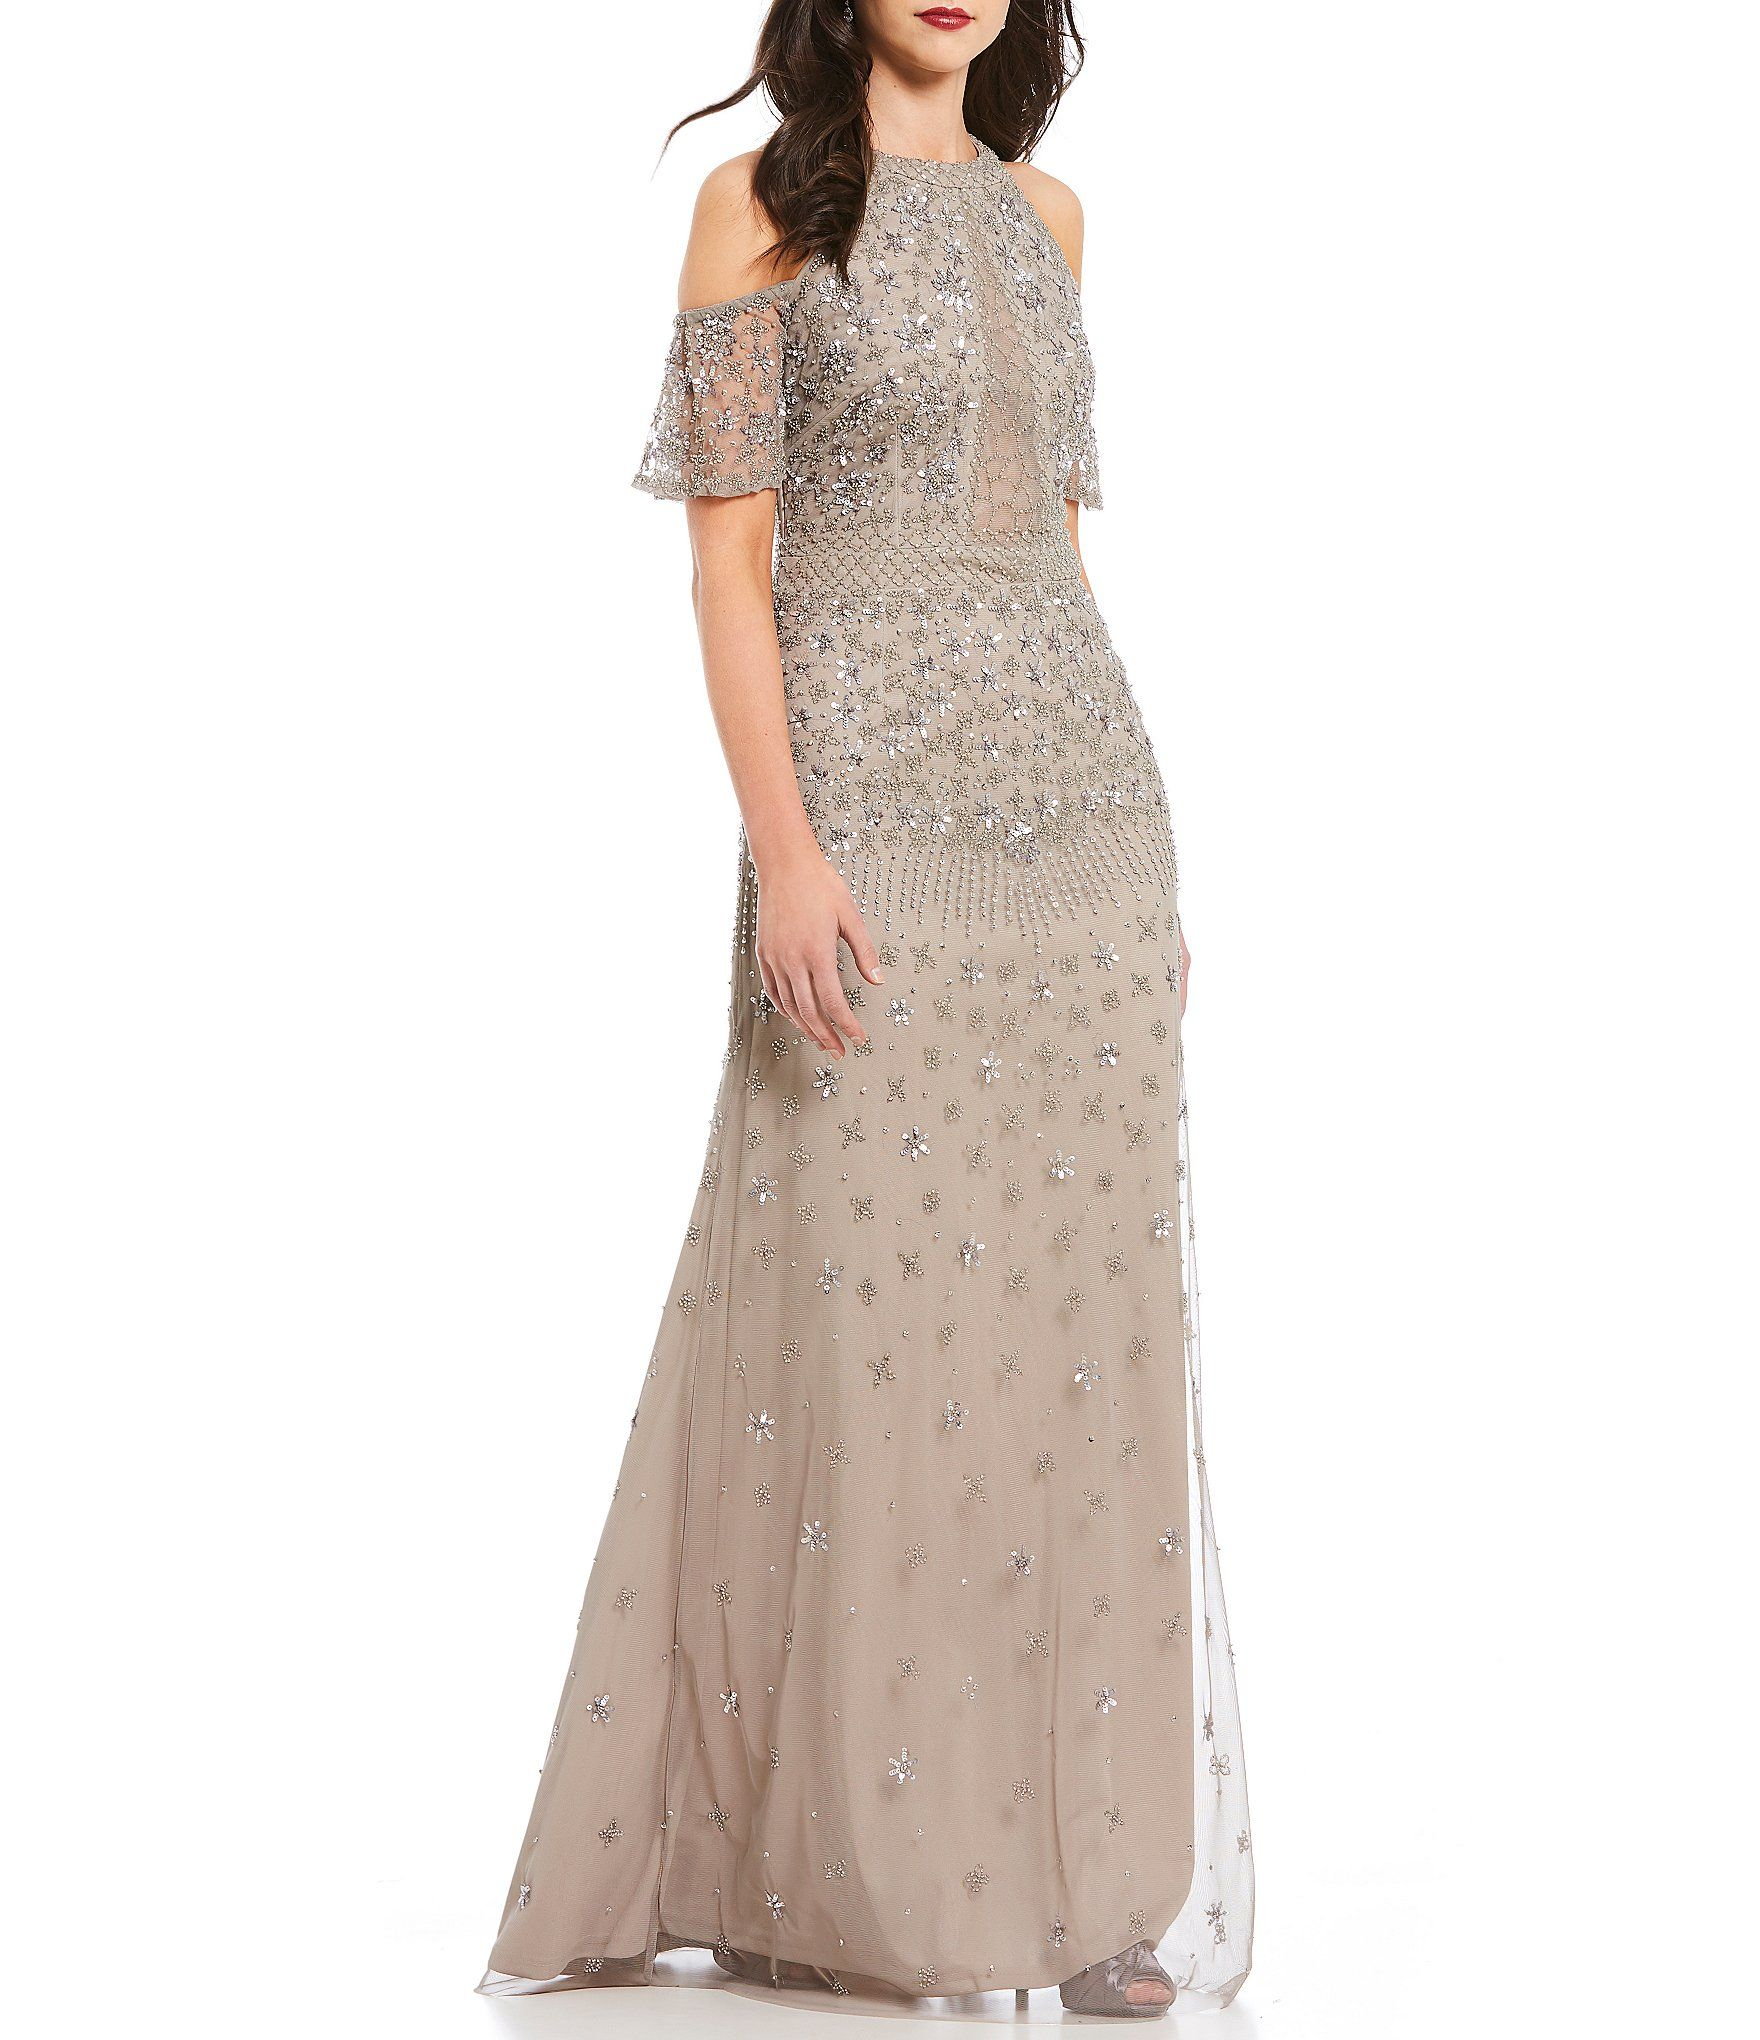 b11f3f0c465 Shop for Adrianna Papell Cold Shoulder Beaded Gown at Dillards.com. Visit  Dillards.com to find clothing